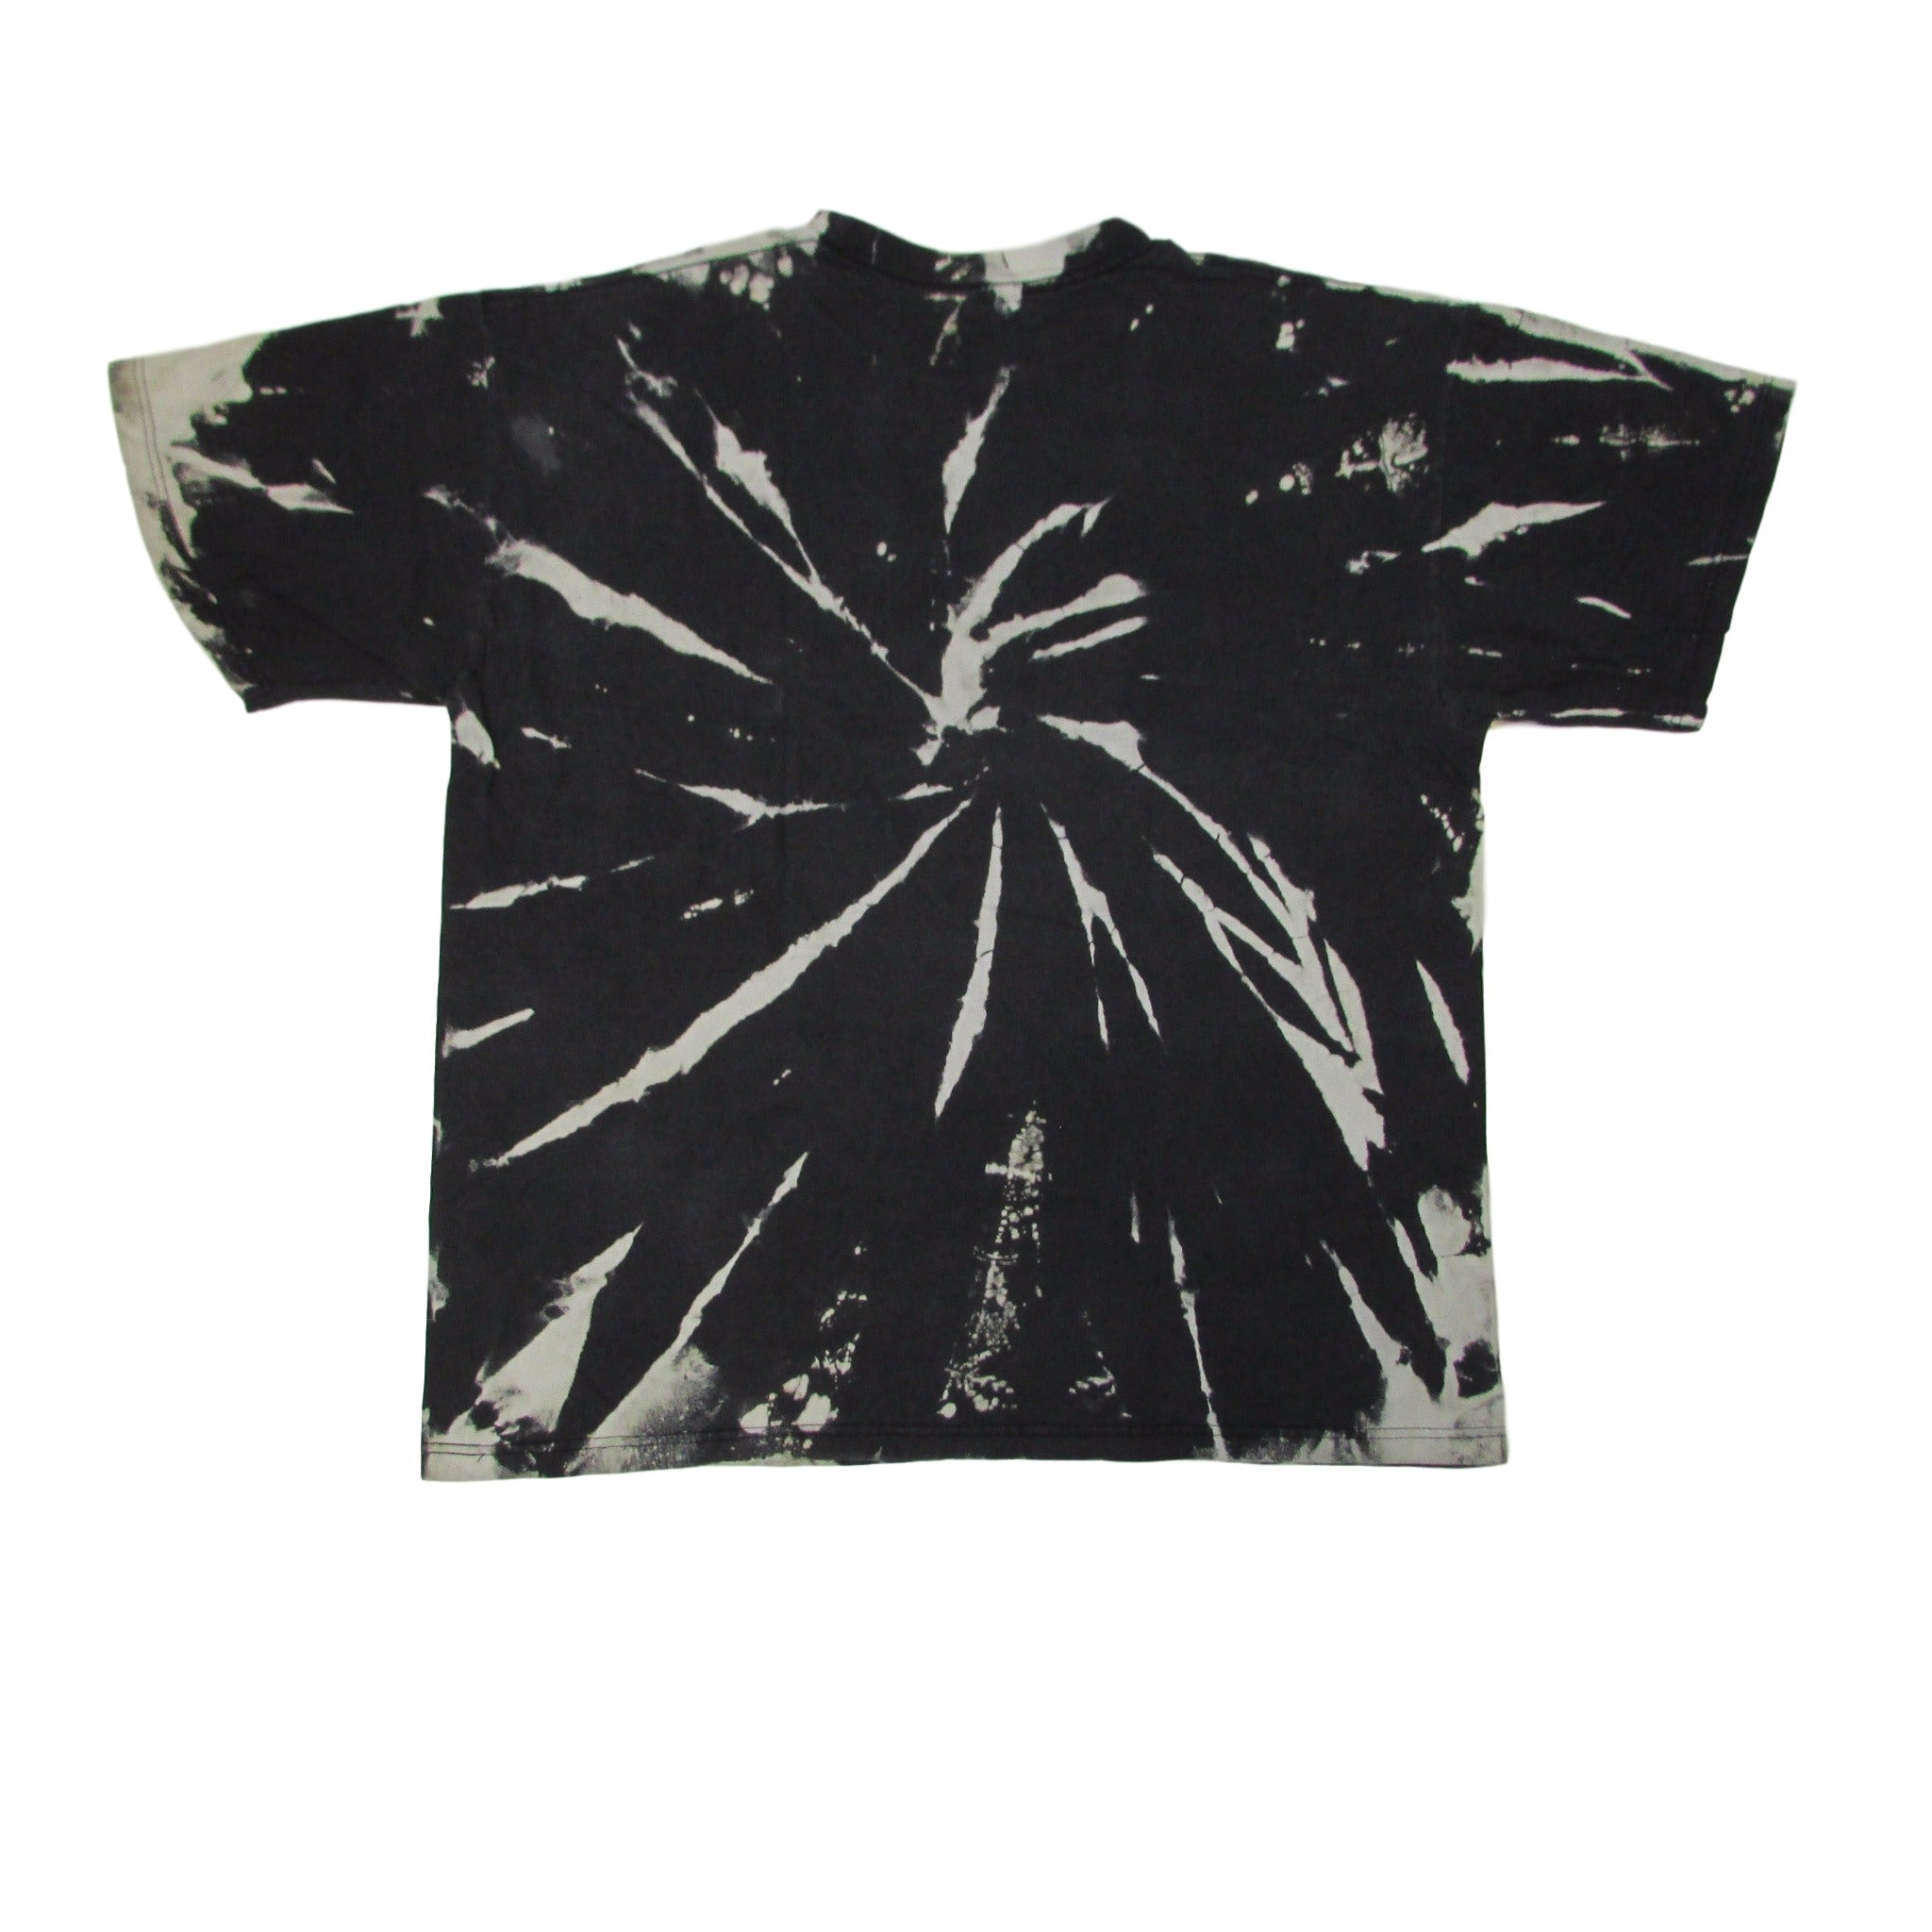 Oakland Raiders Taz Cartoon Bleached Tie Dye T-Shirt